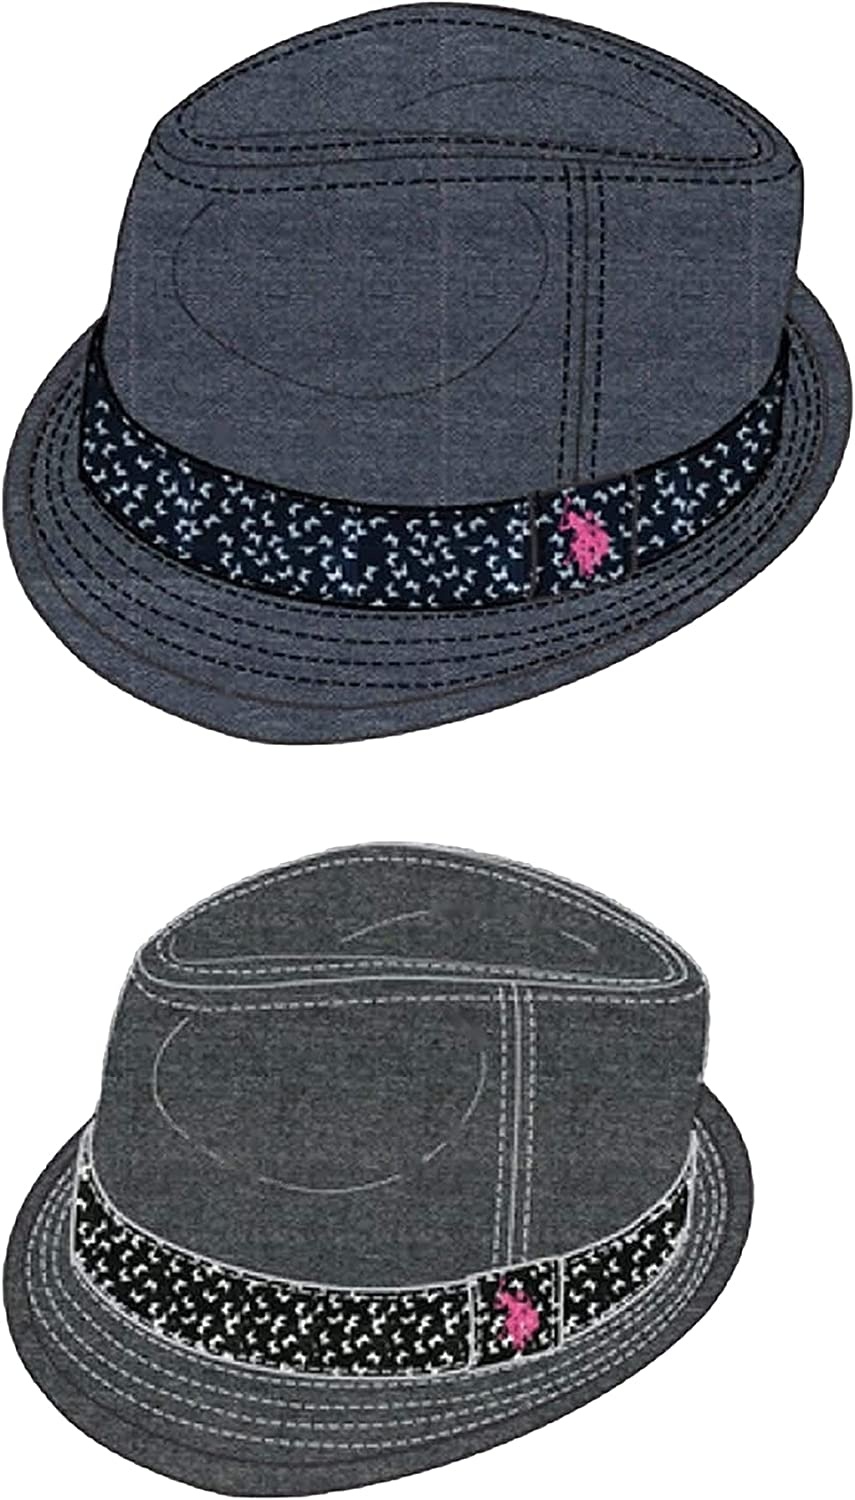 Concept One U.s. Polo Association Women's Chambray Fedora with Butterfly Print Hatband